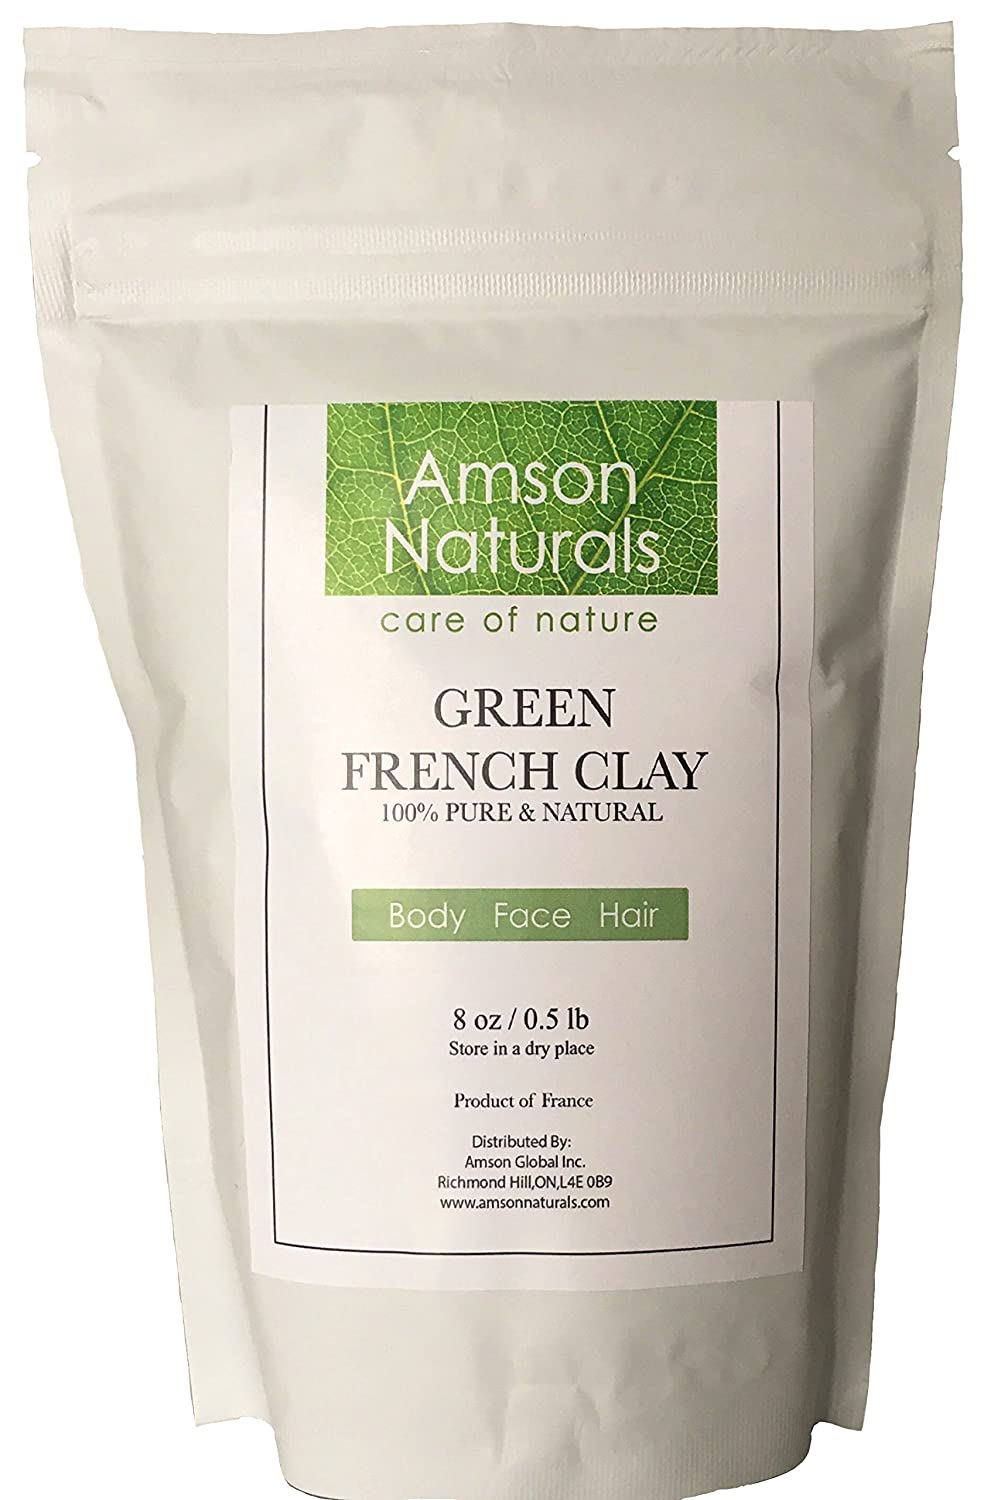 FRENCH CLAY GREEN-100% Pure & Natural-8oz (0.5lb)-by Amson Naturals, Illite Super Fine Powder